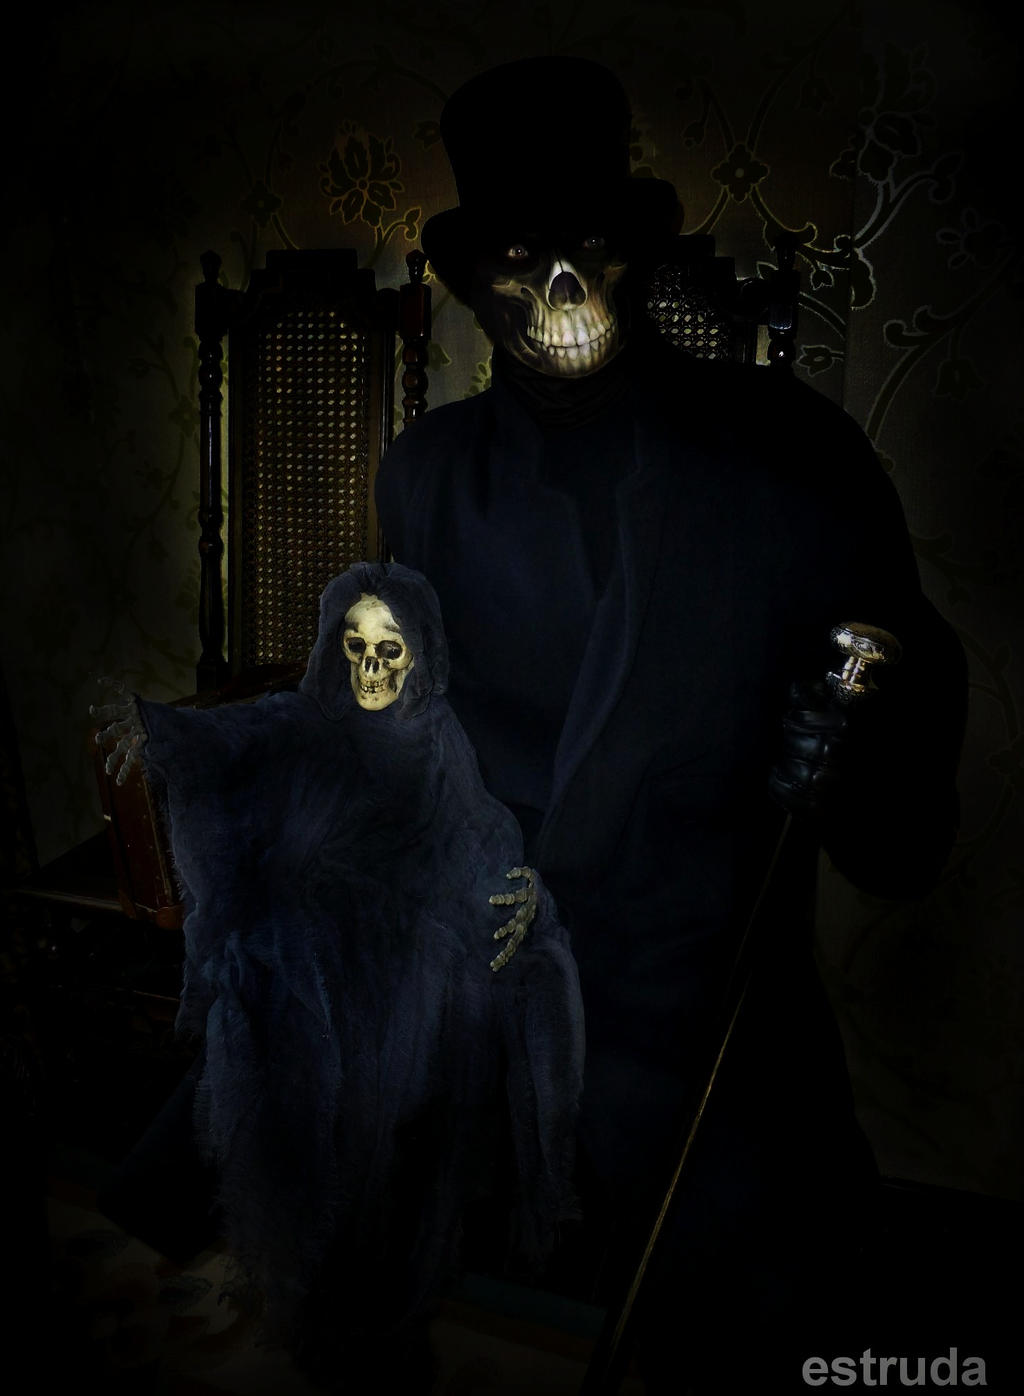 The Puppet Master by Estruda